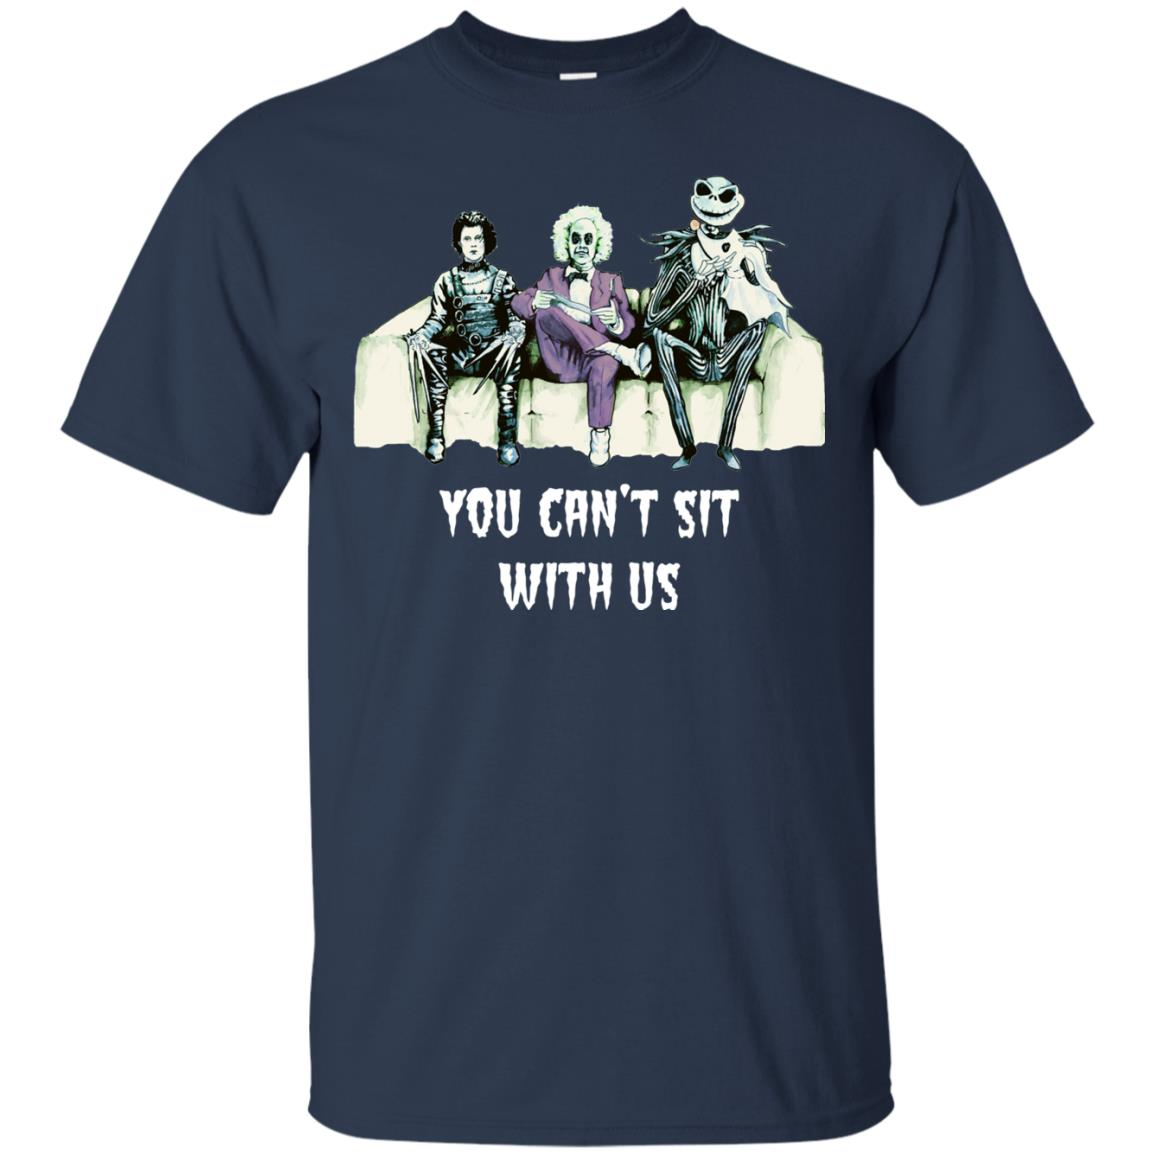 image 1276px Beetlejuice, Edward, Jack: You can't sit with us t shirt, hoodies, tank top